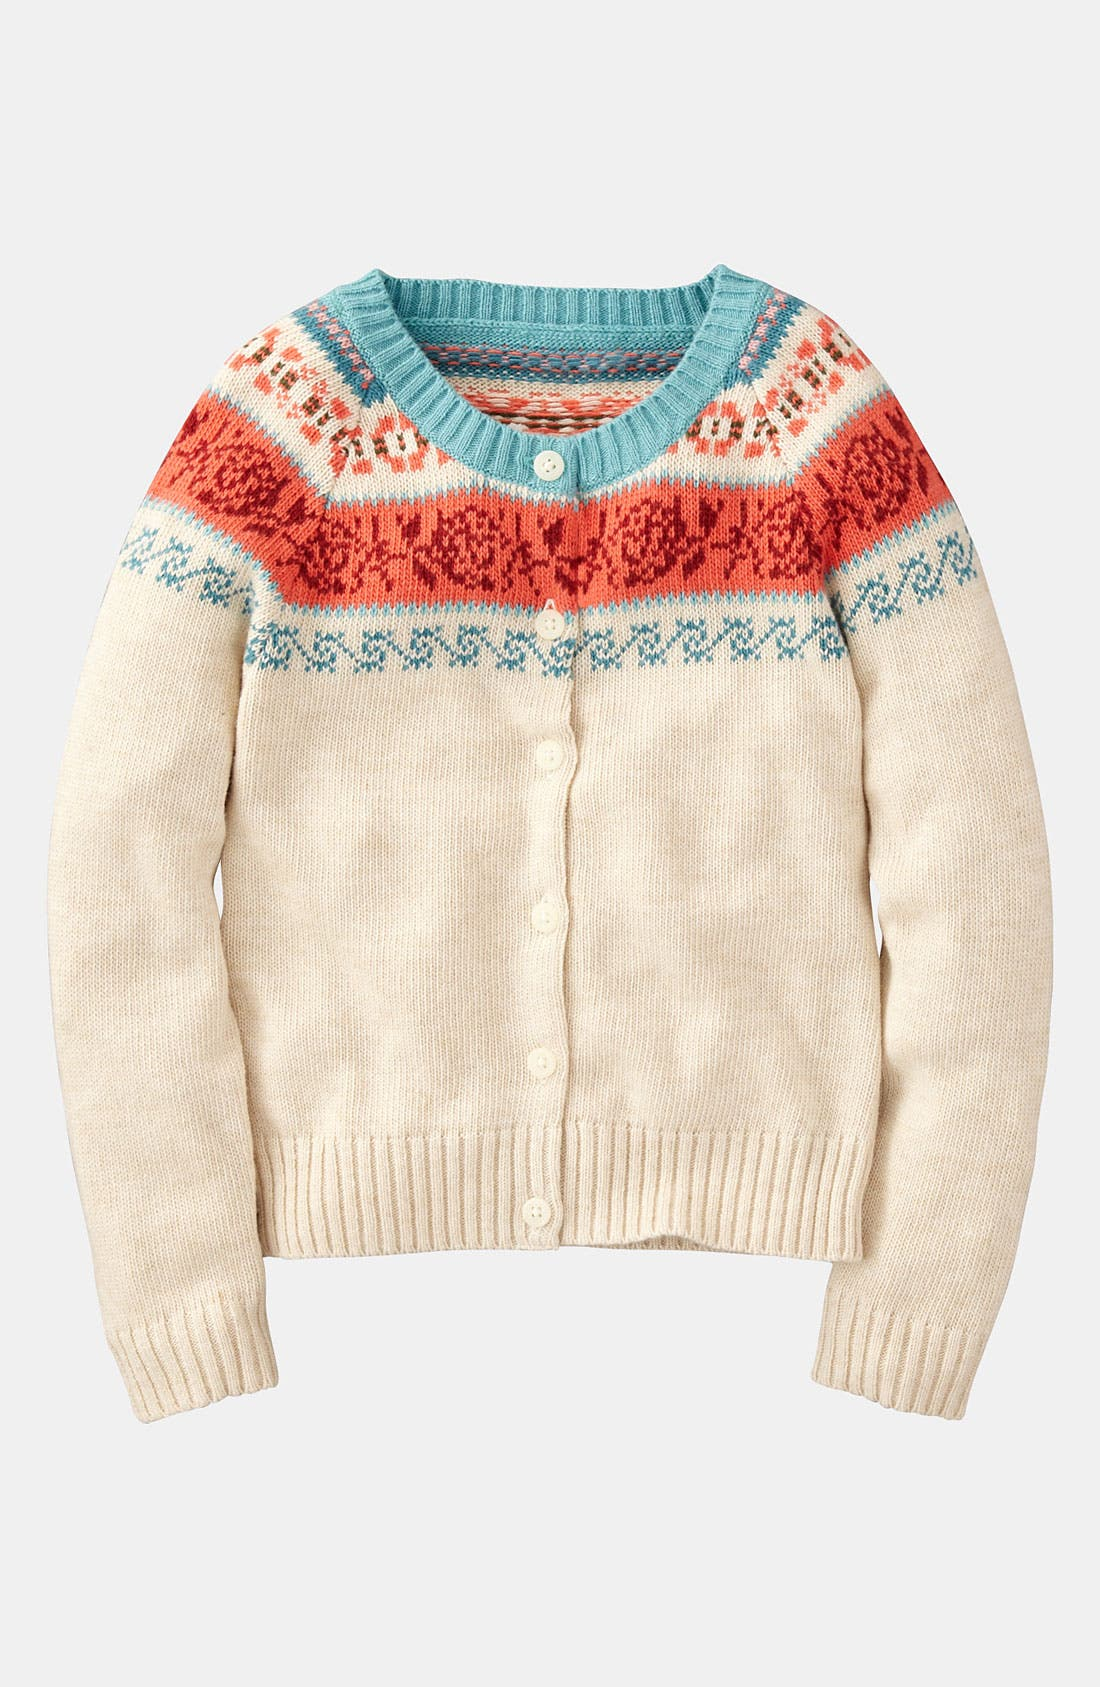 Alternate Image 1 Selected - Mini Boden 'Fair Isle' Cardigan (Little Girls & Big Girls)